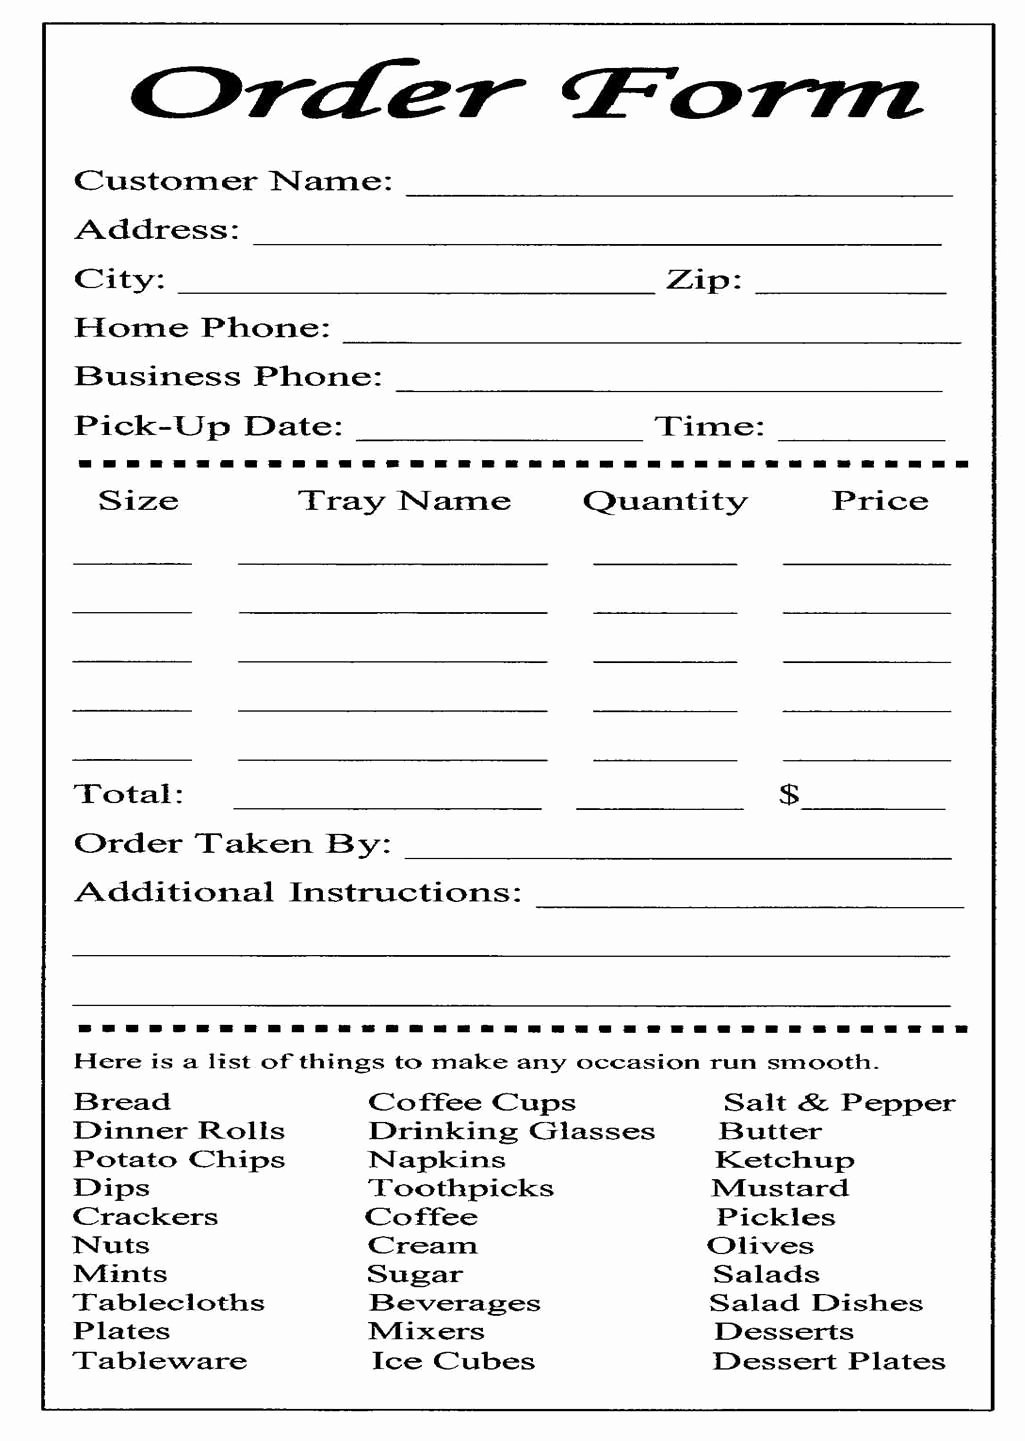 Catering forms Templates Lovely Cake Ball order form Templates Free